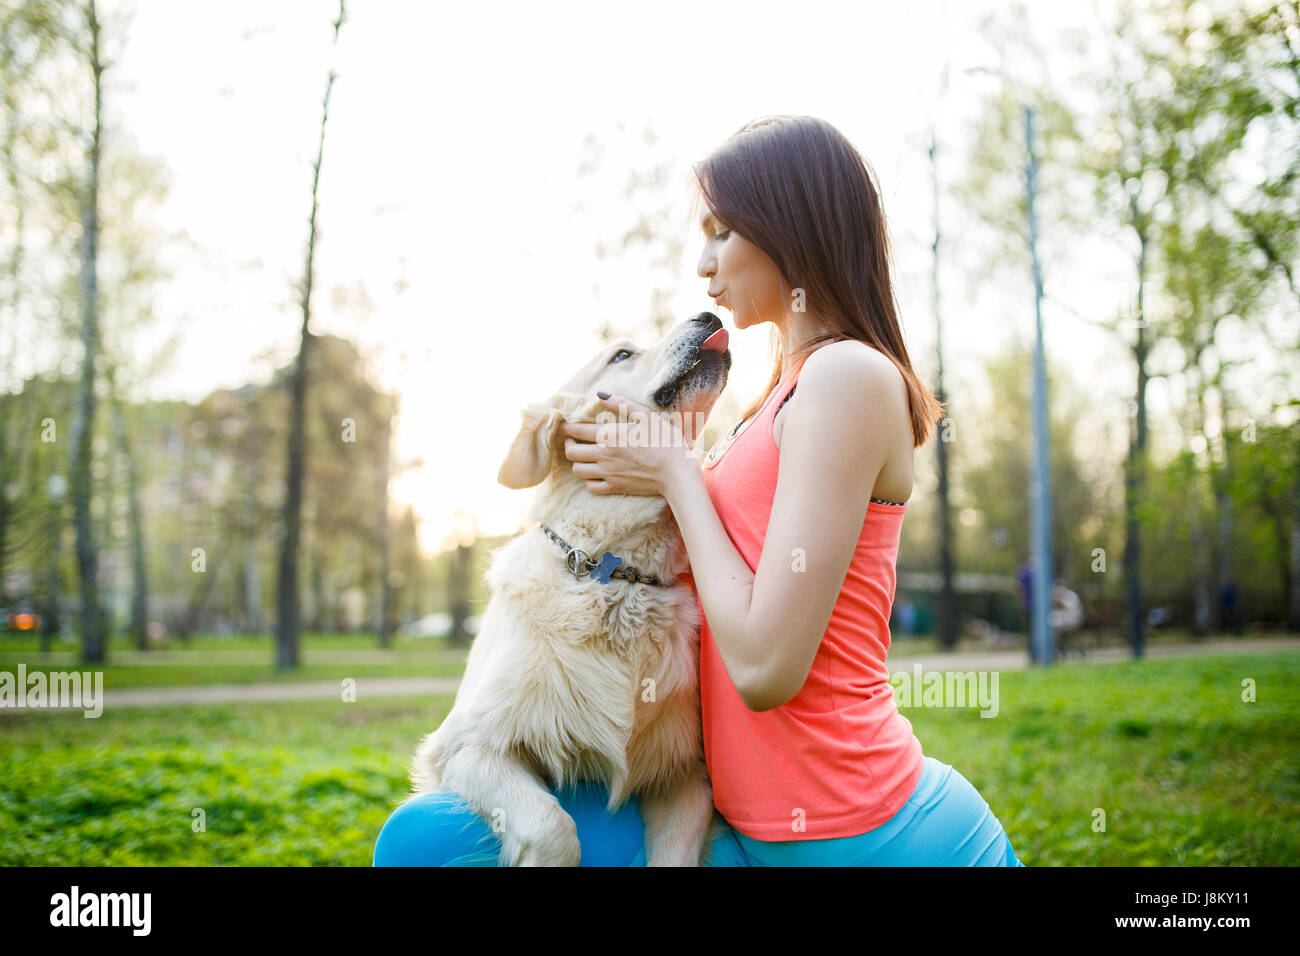 Woman hugging dog on lawn Photo Stock